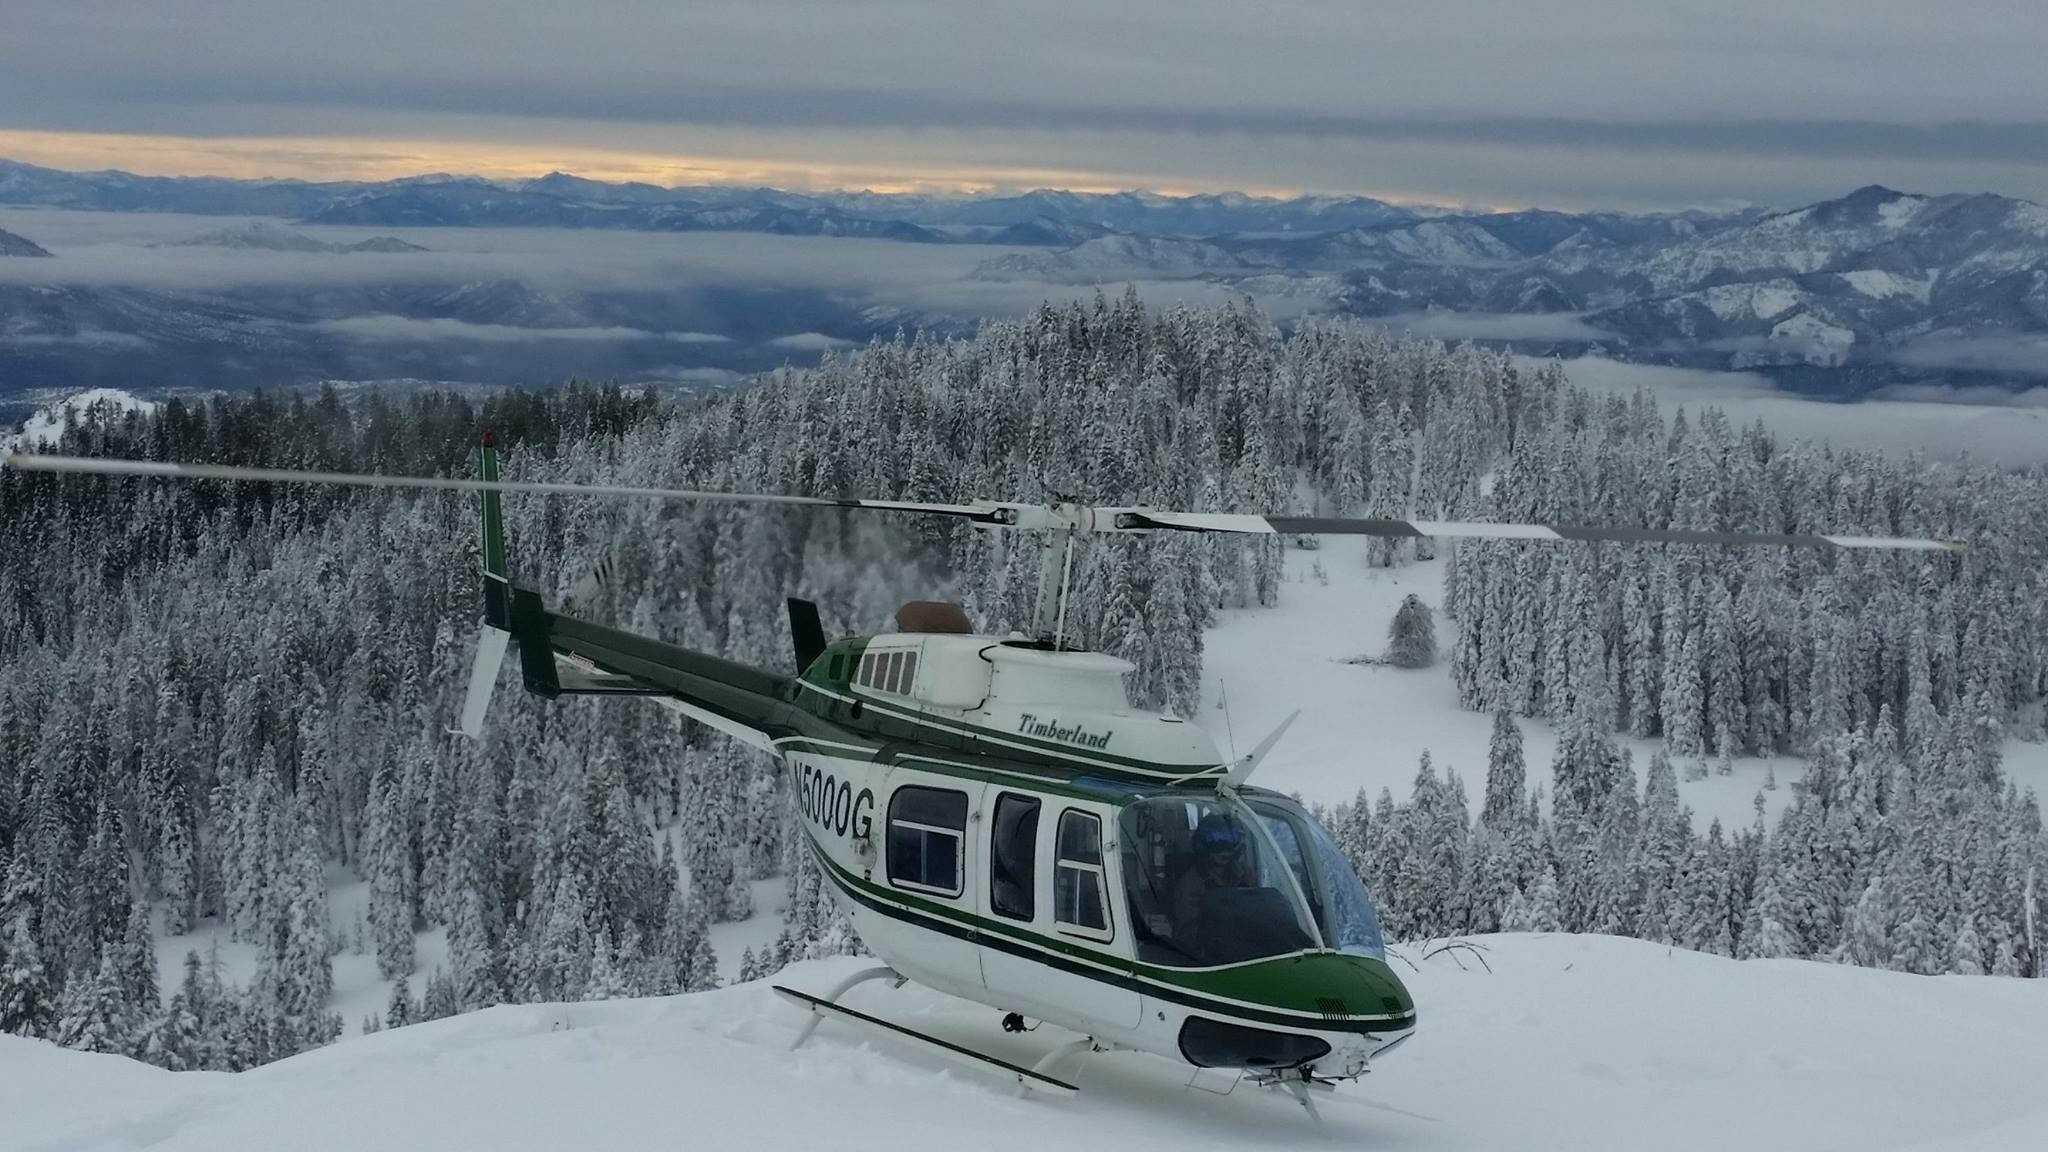 Timberland Helicopters, Inc  | LinkedIn